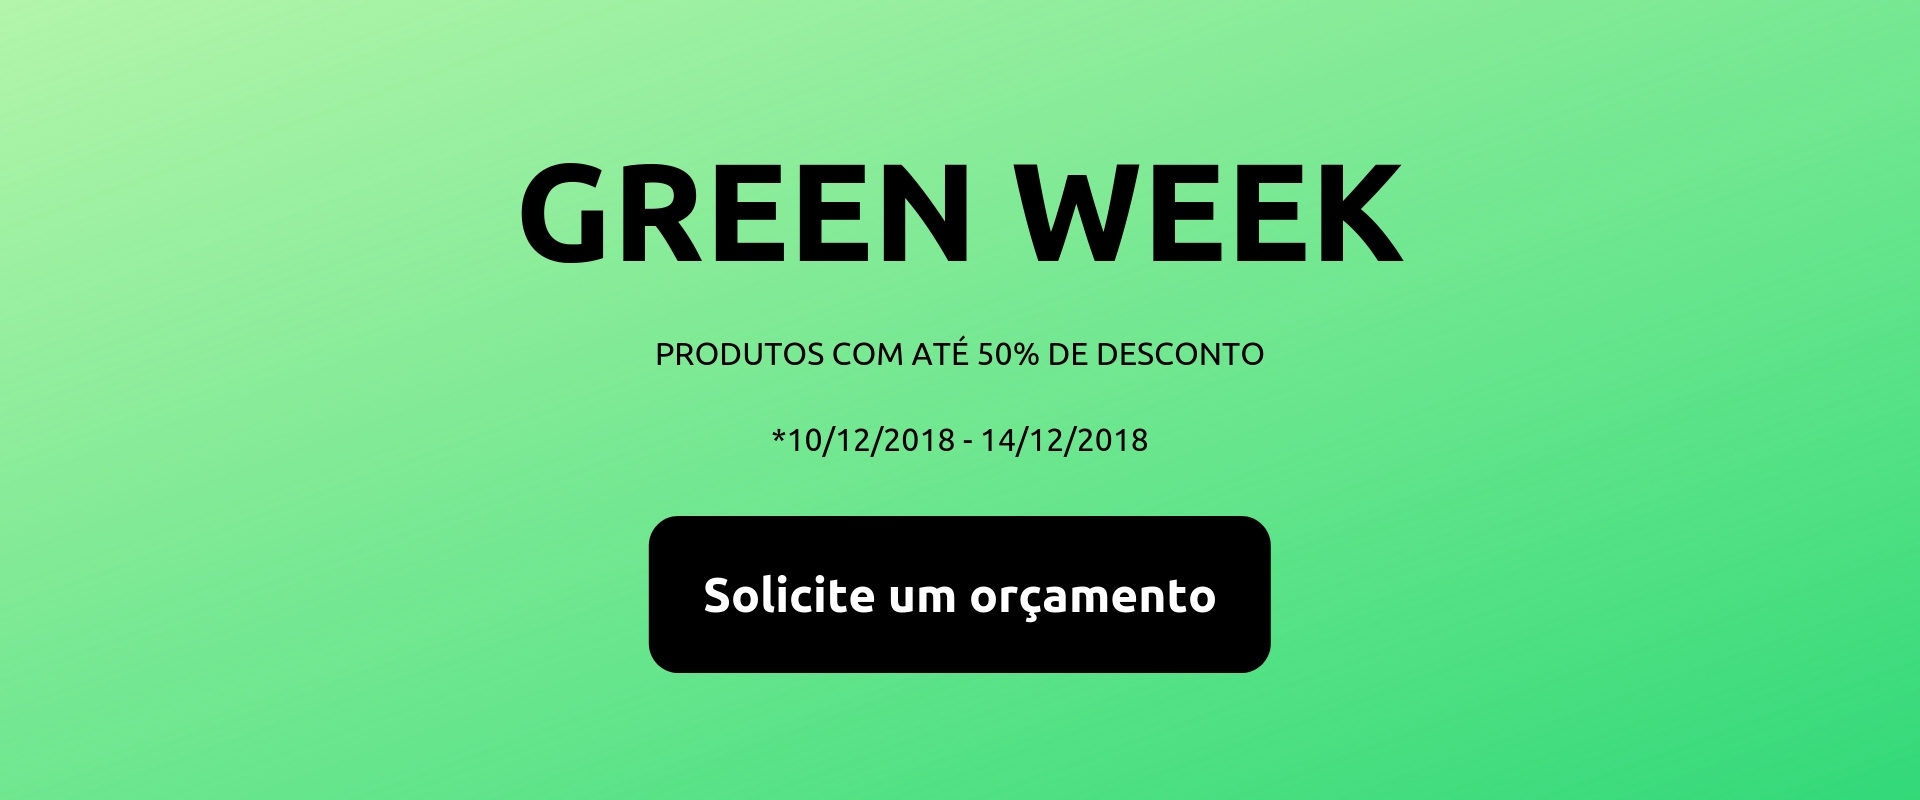 AuE Green Week - Semana de descontos